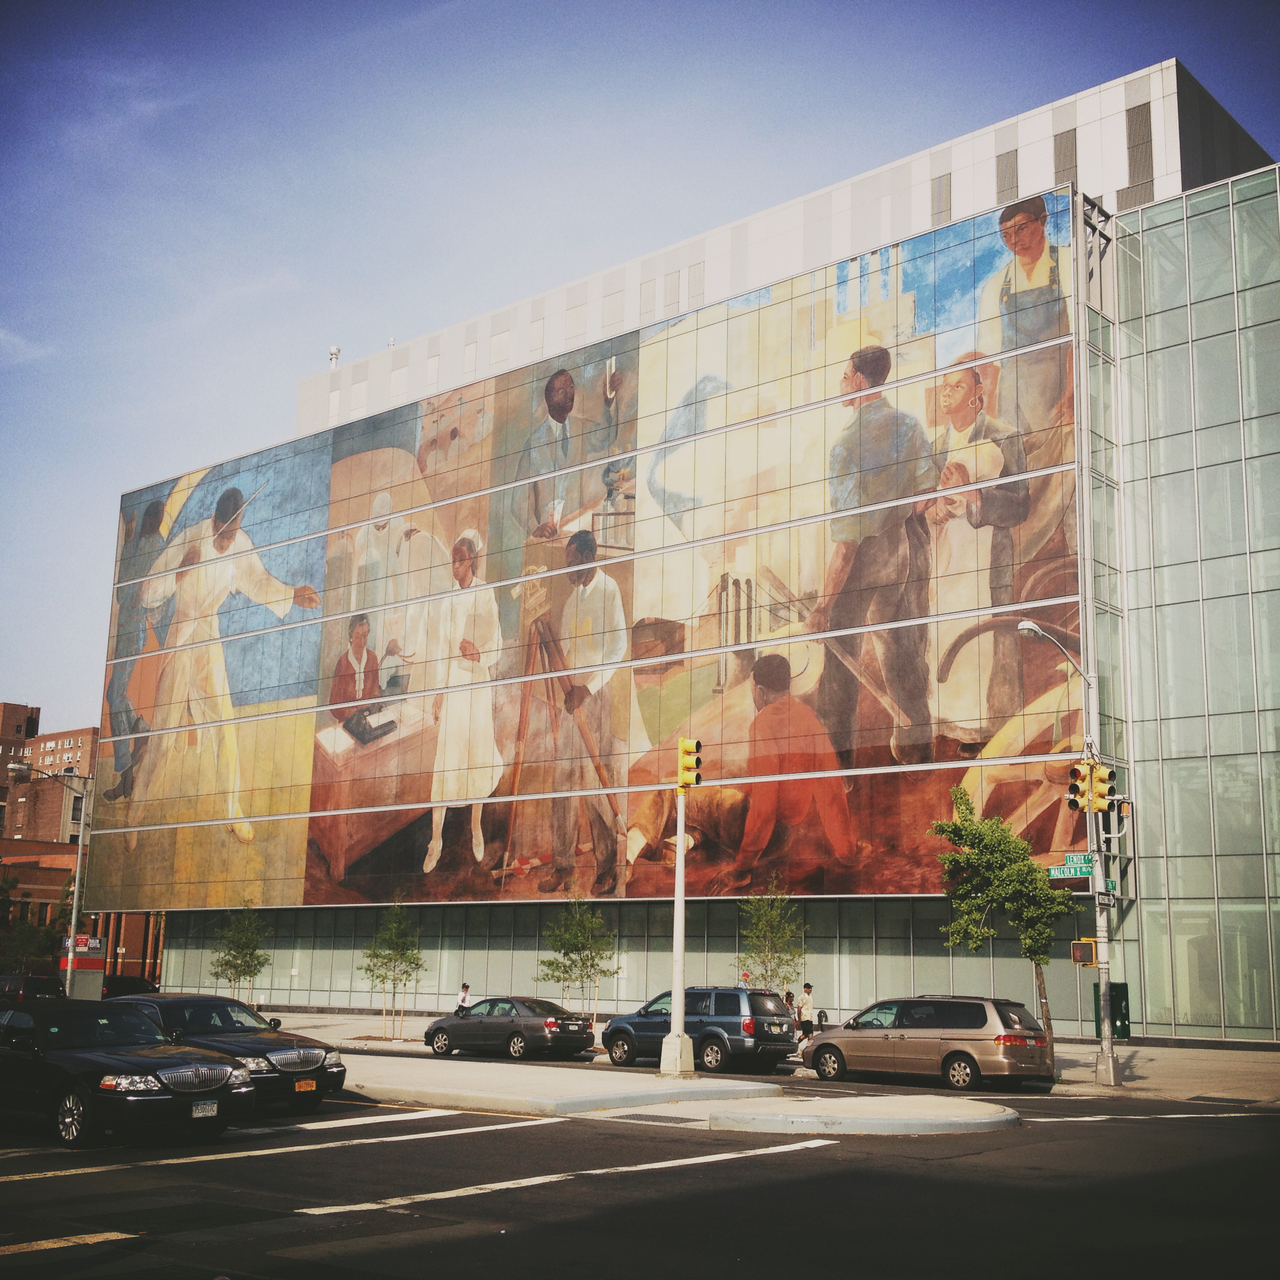 Harlem Hospital Mural #pepper peppersearching #mural #harlem #hospital #nyc #art #lenox #ave #malcolmx #blvd #blackpeople